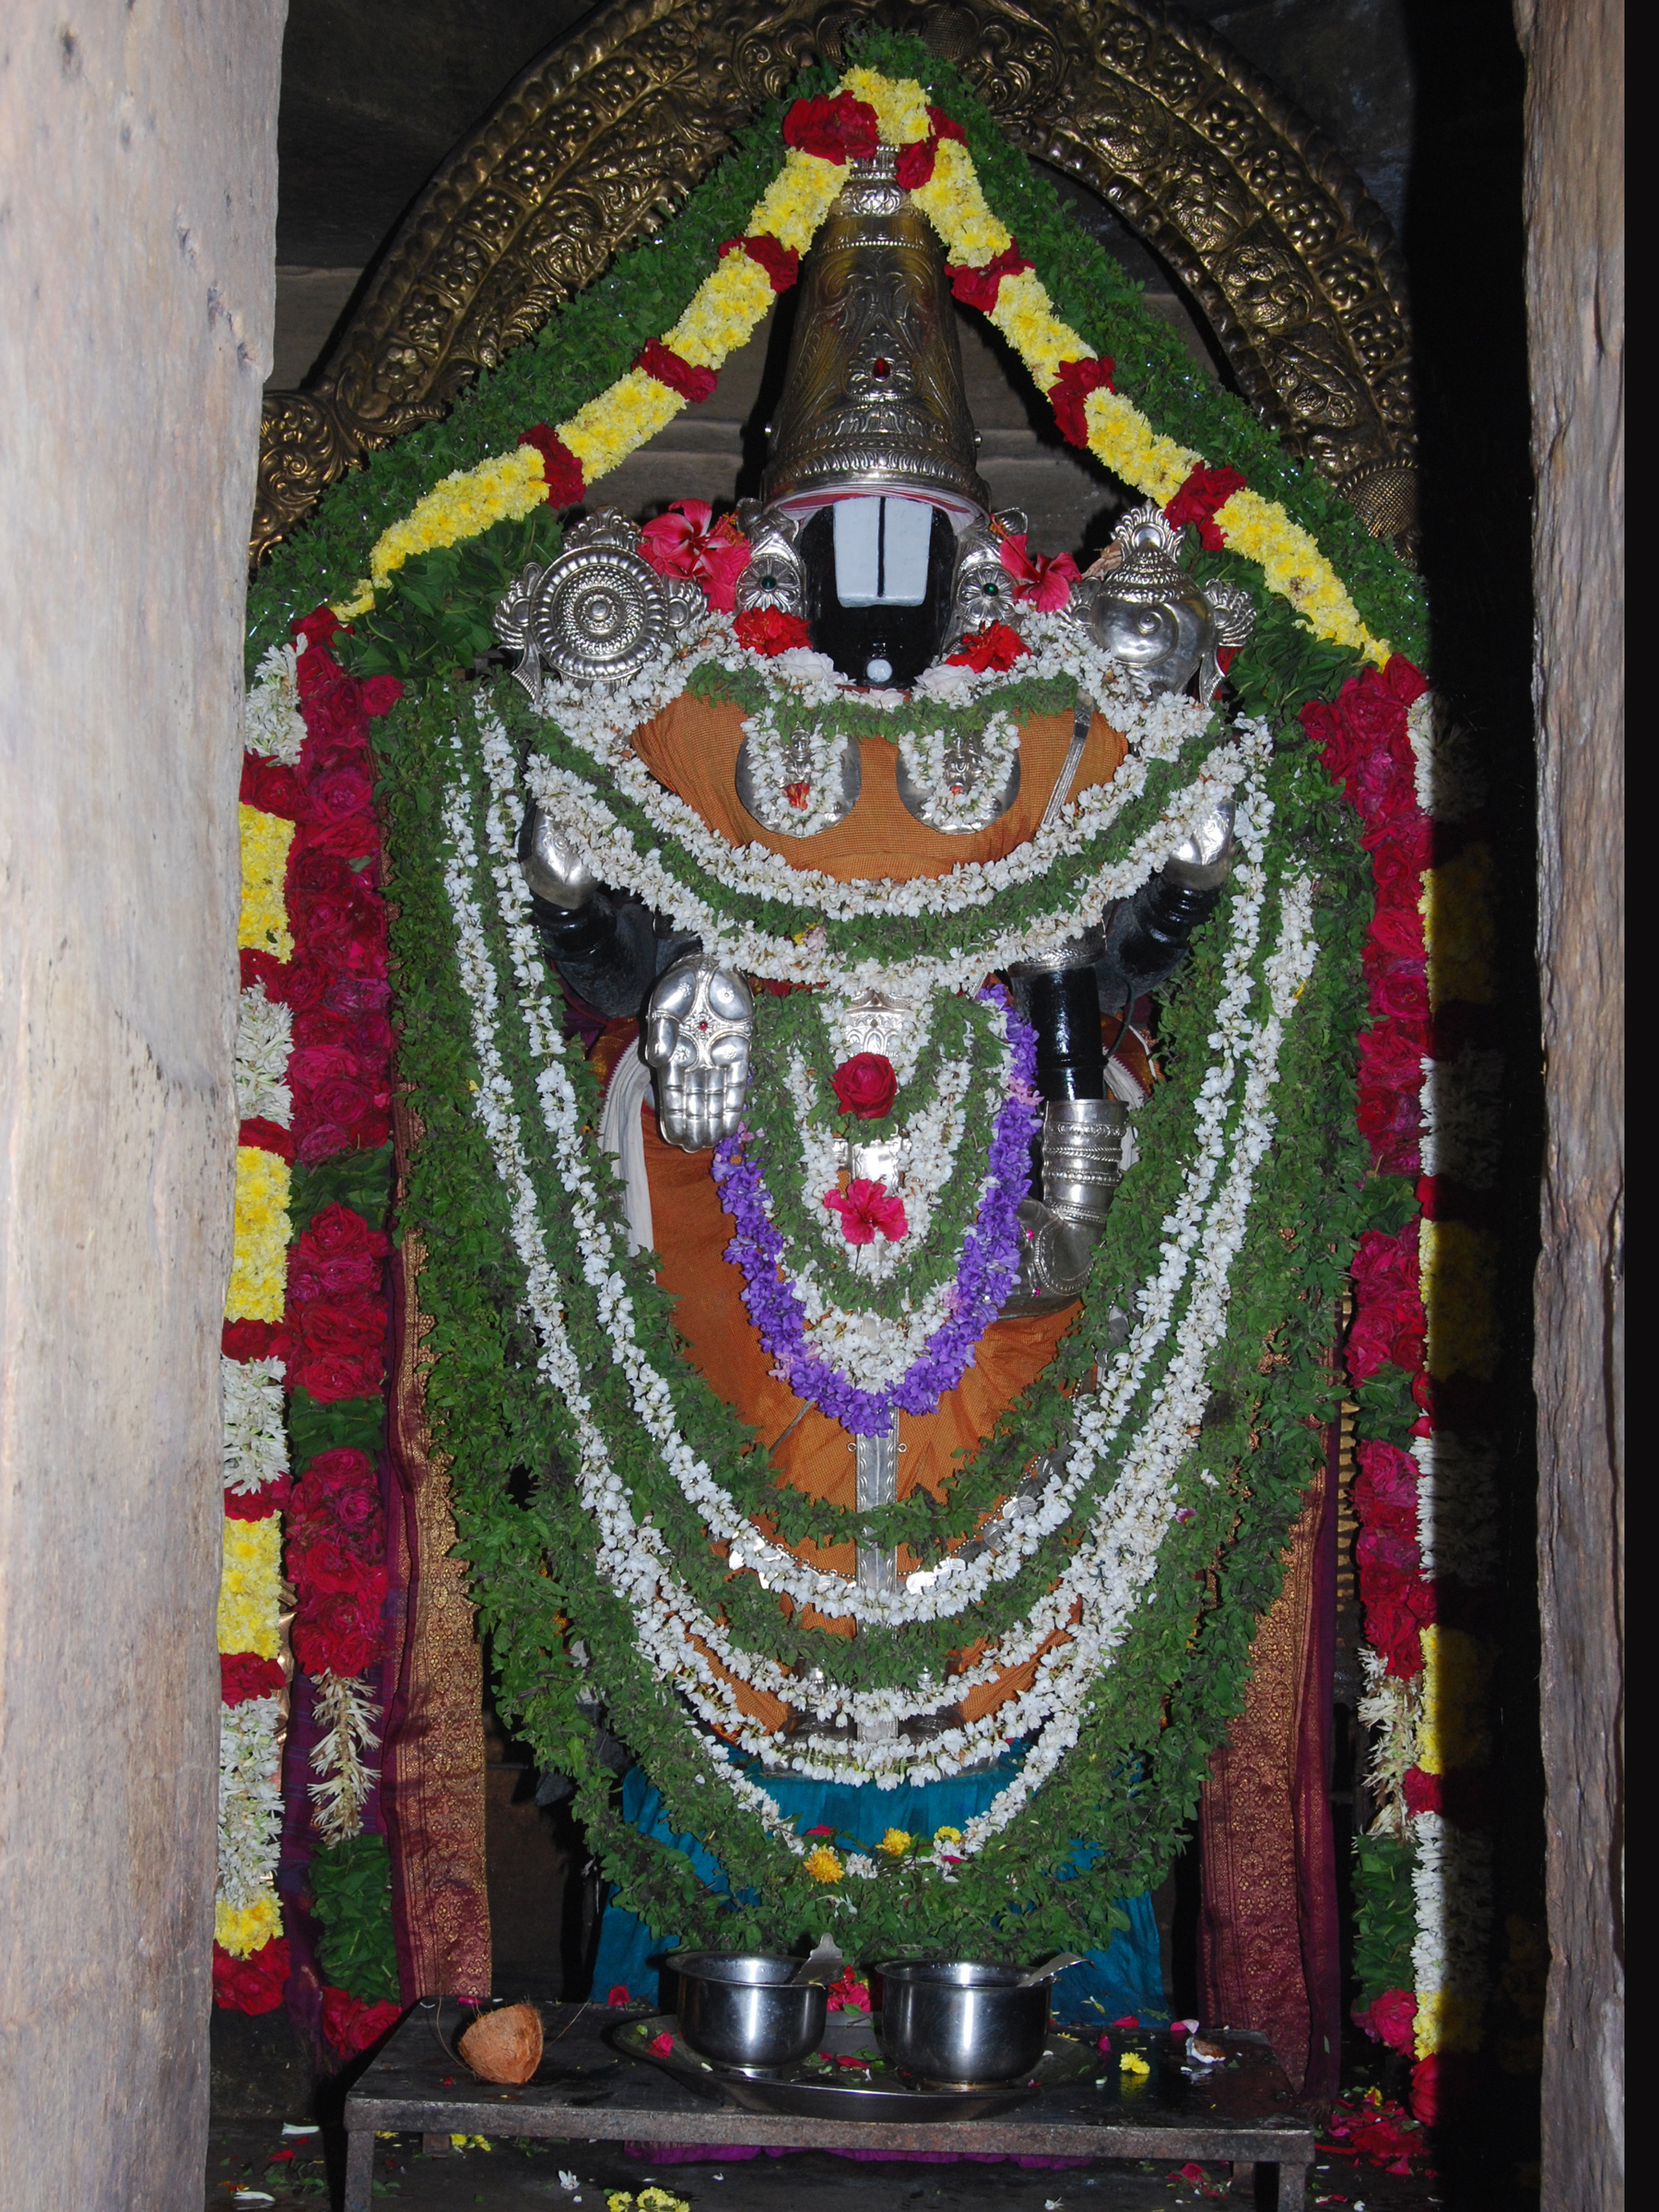 Koneti Rayala Swamy Temple, Chittoor District